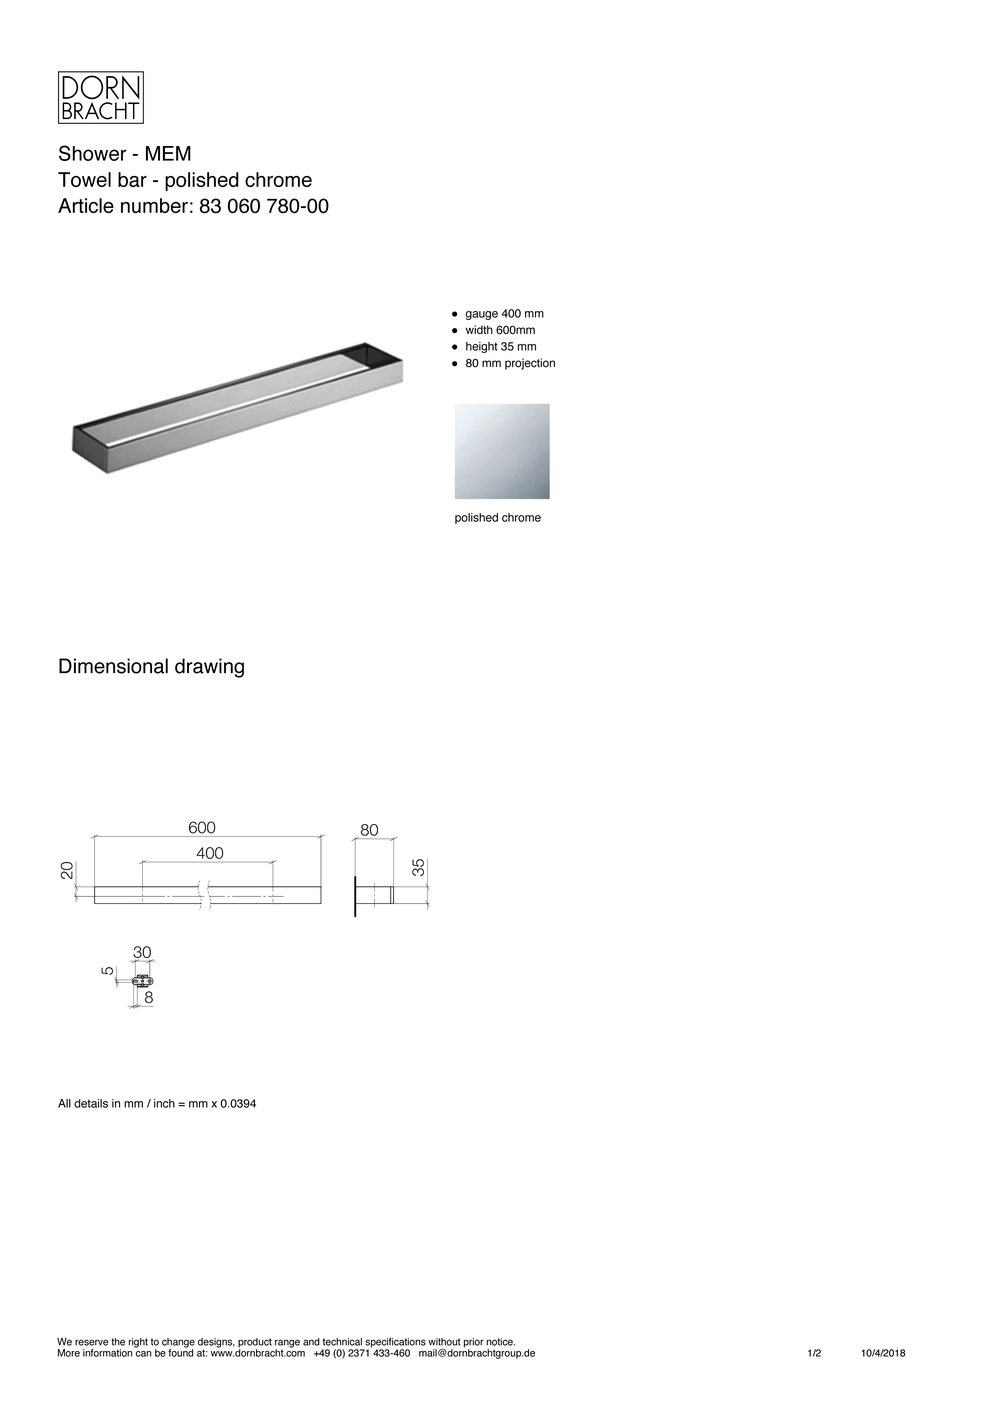 Dornbracht MEM towel bar specification sheet-1.jpg